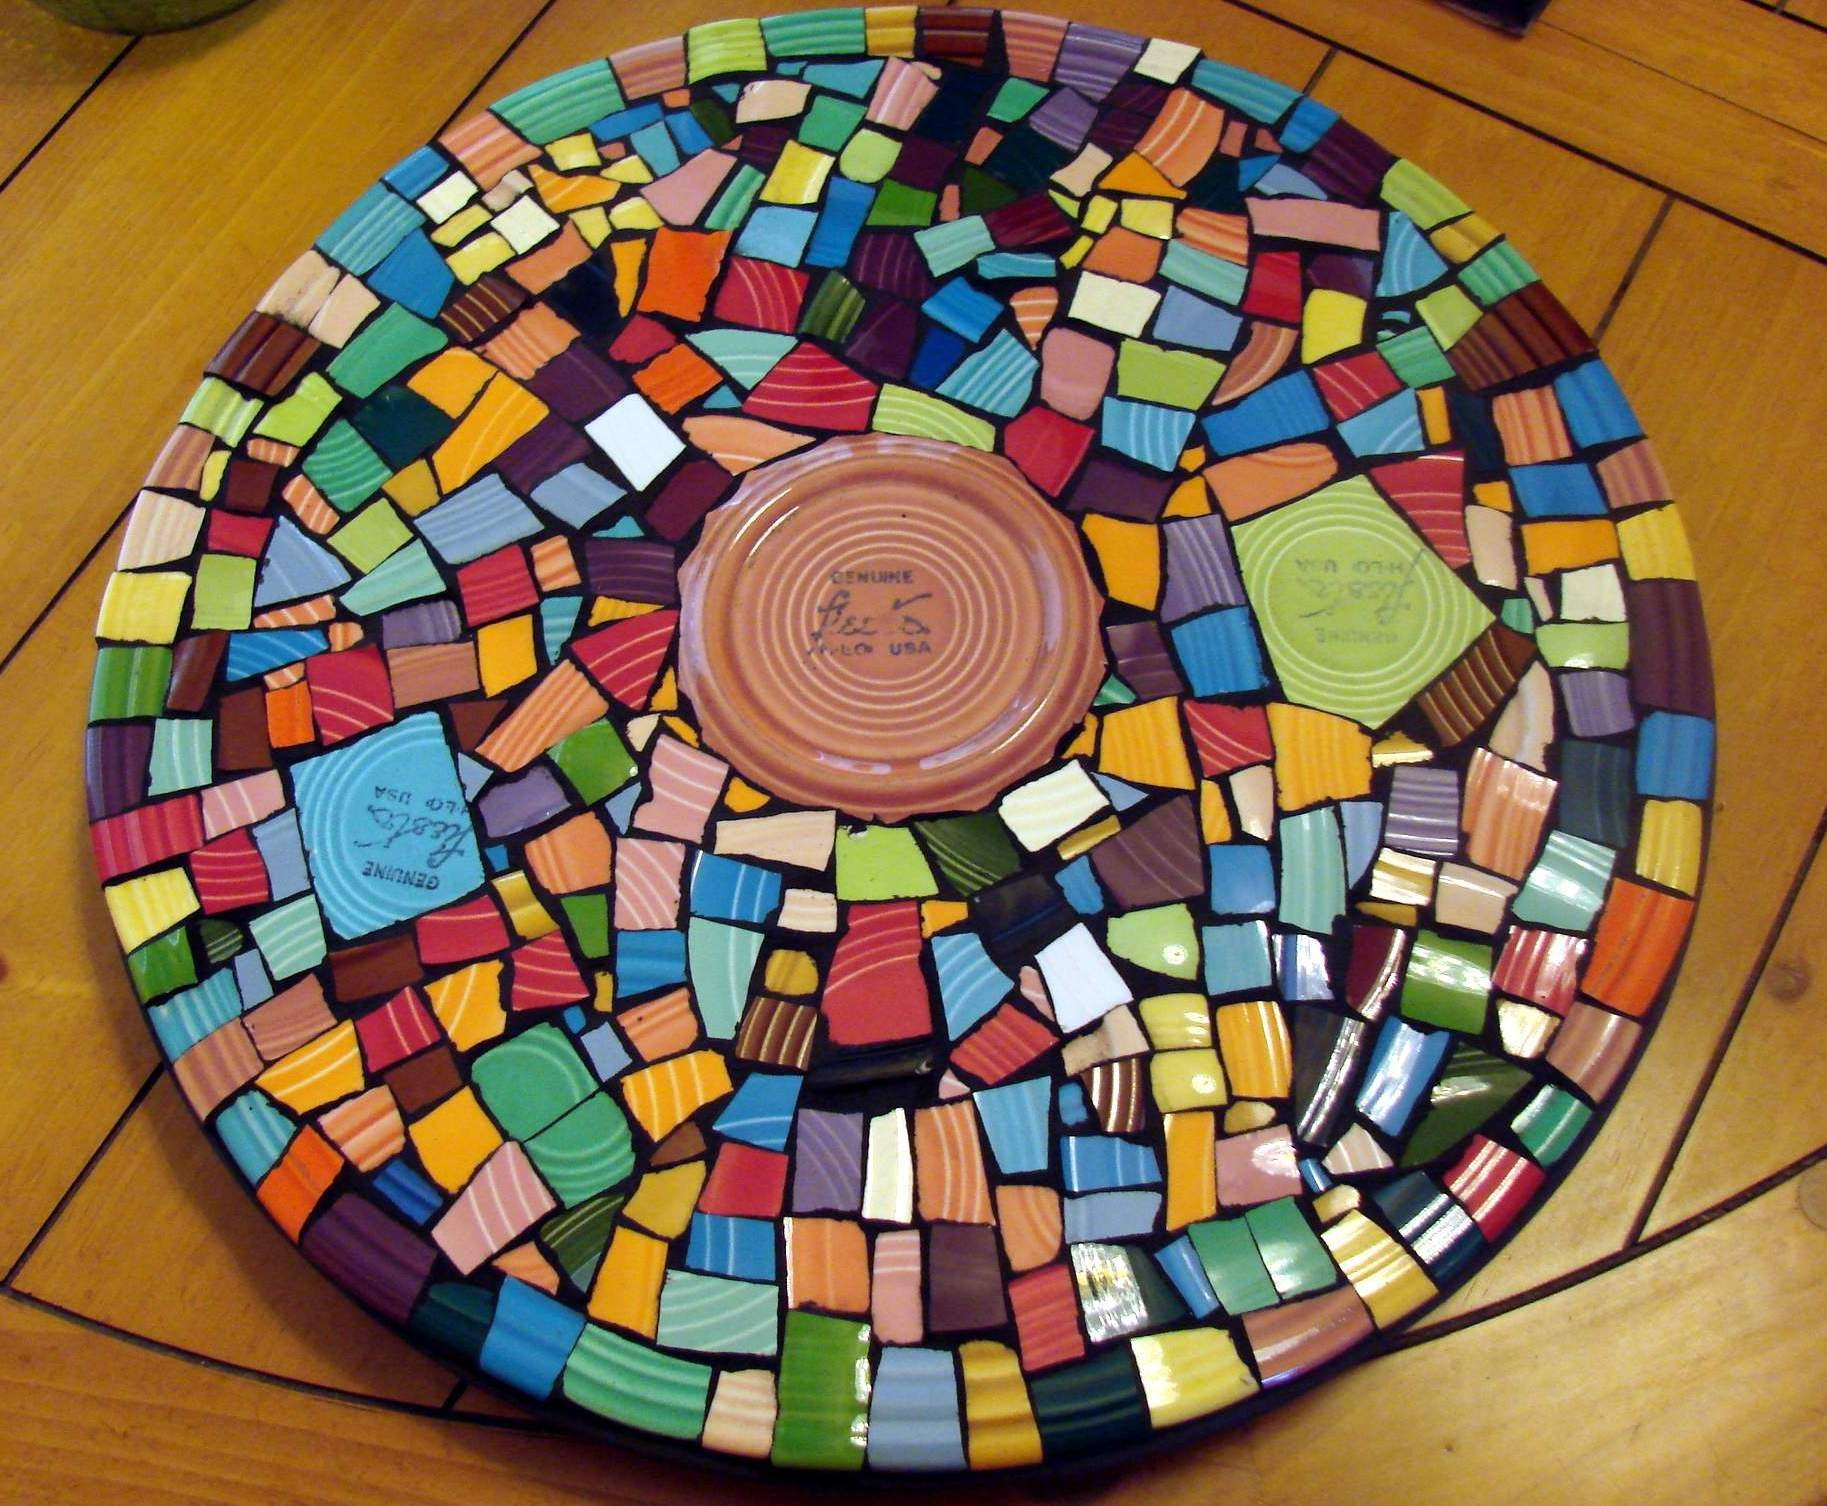 Awesome Collections Of Fiestaware For Dinnerware Ideas: Pretty Fiestaware Mosaic Art Colorful LAzy Susan Spinner By Cocomo